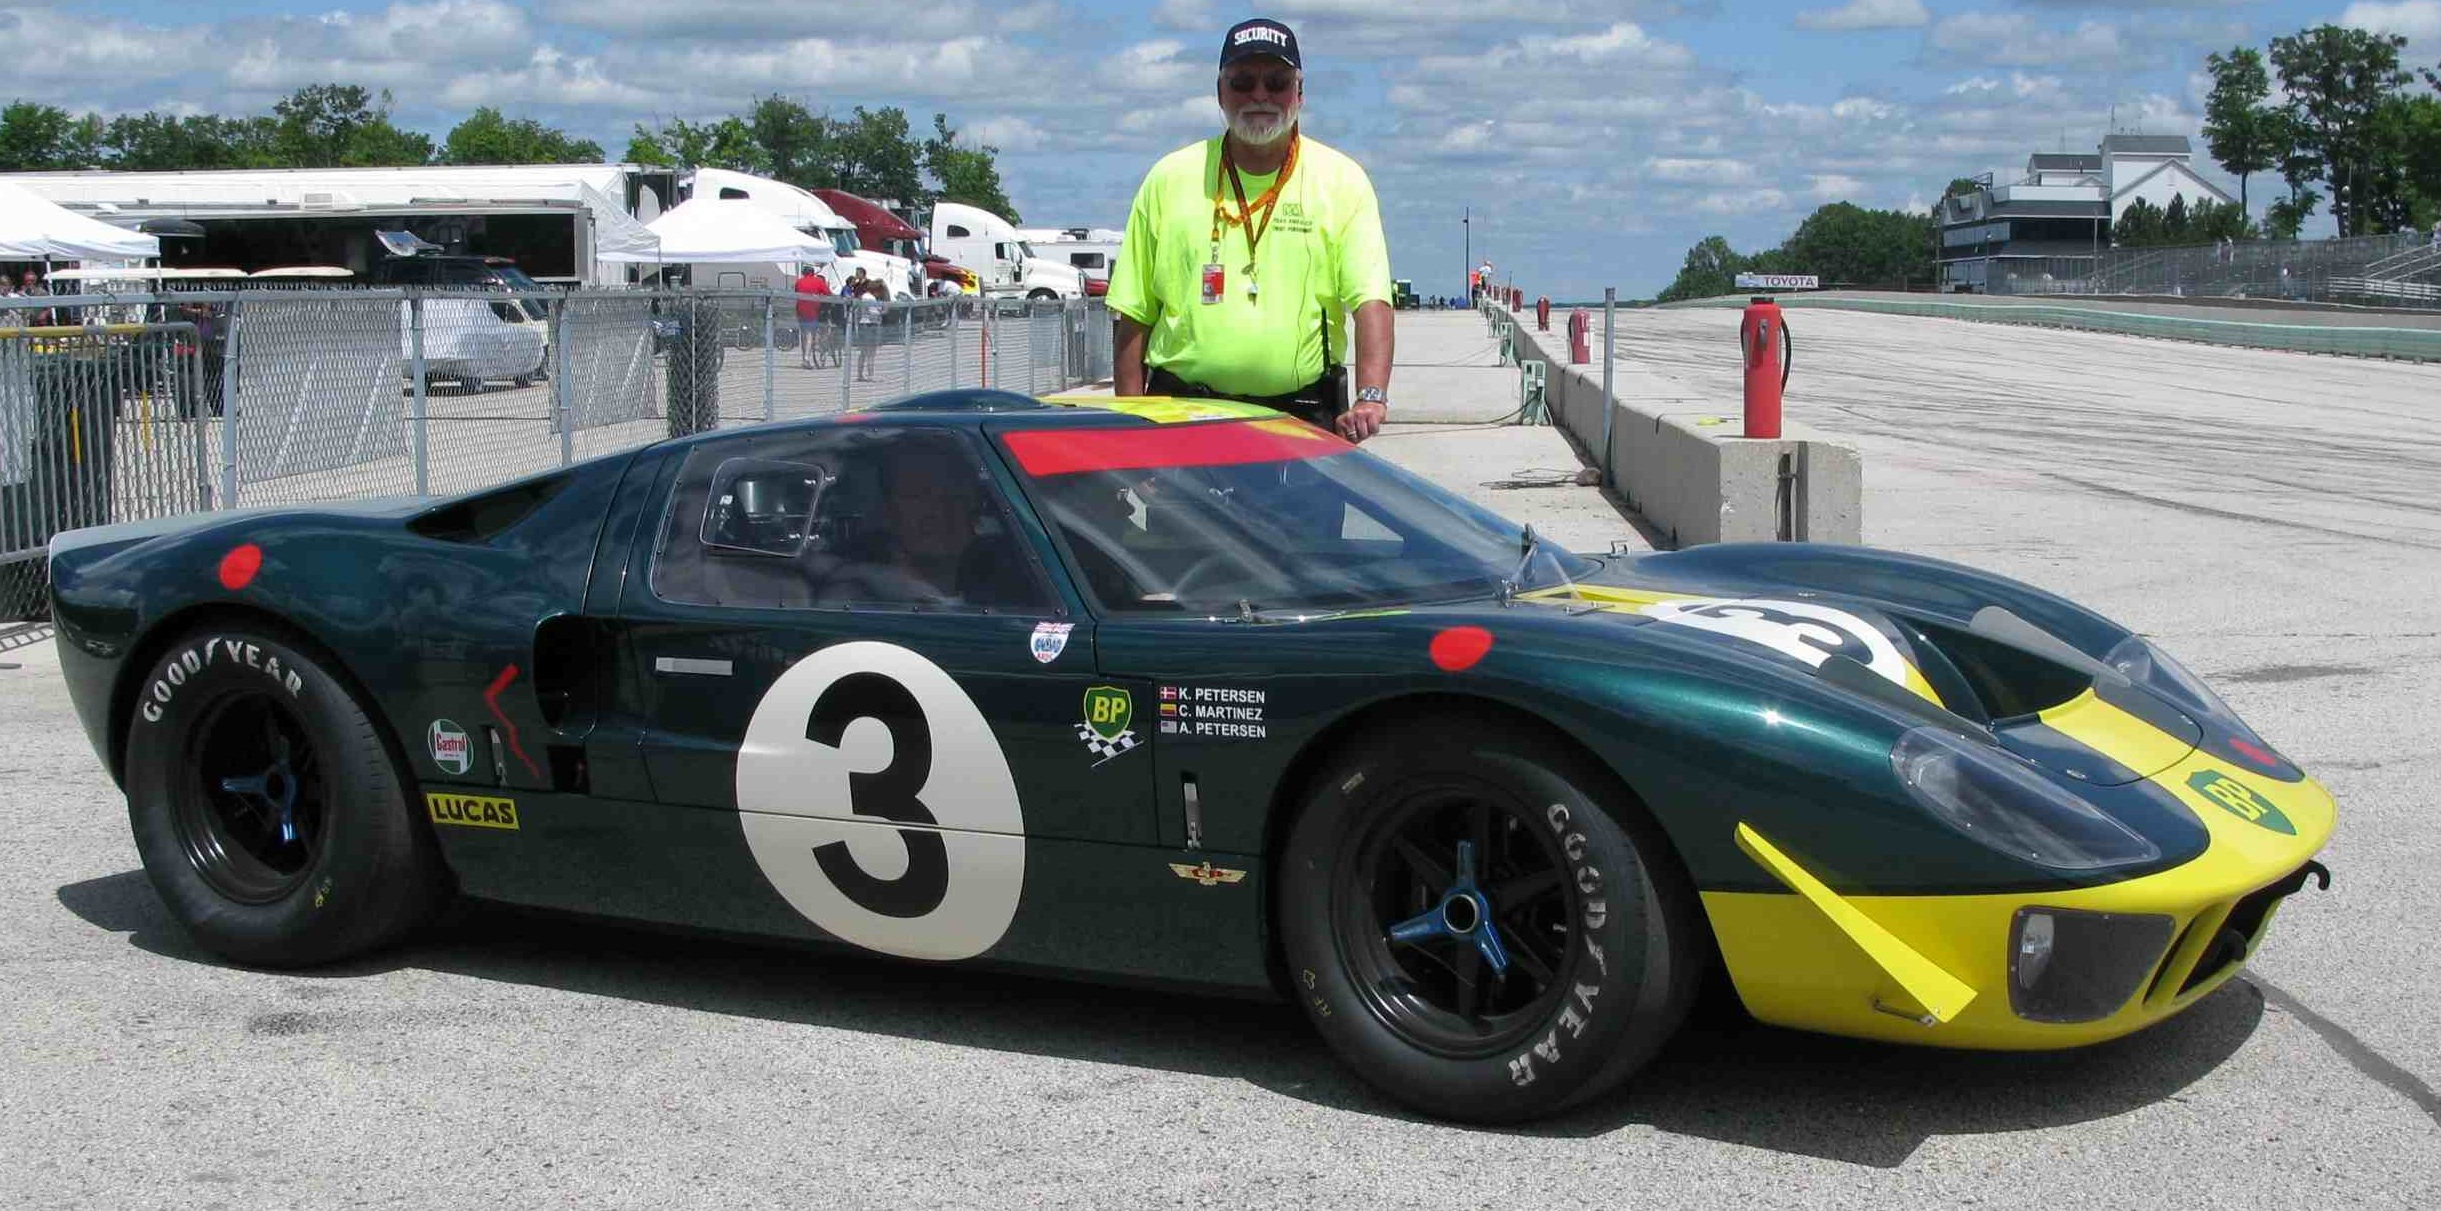 Ford_GT40_P-2090_at_Road_America.jpg